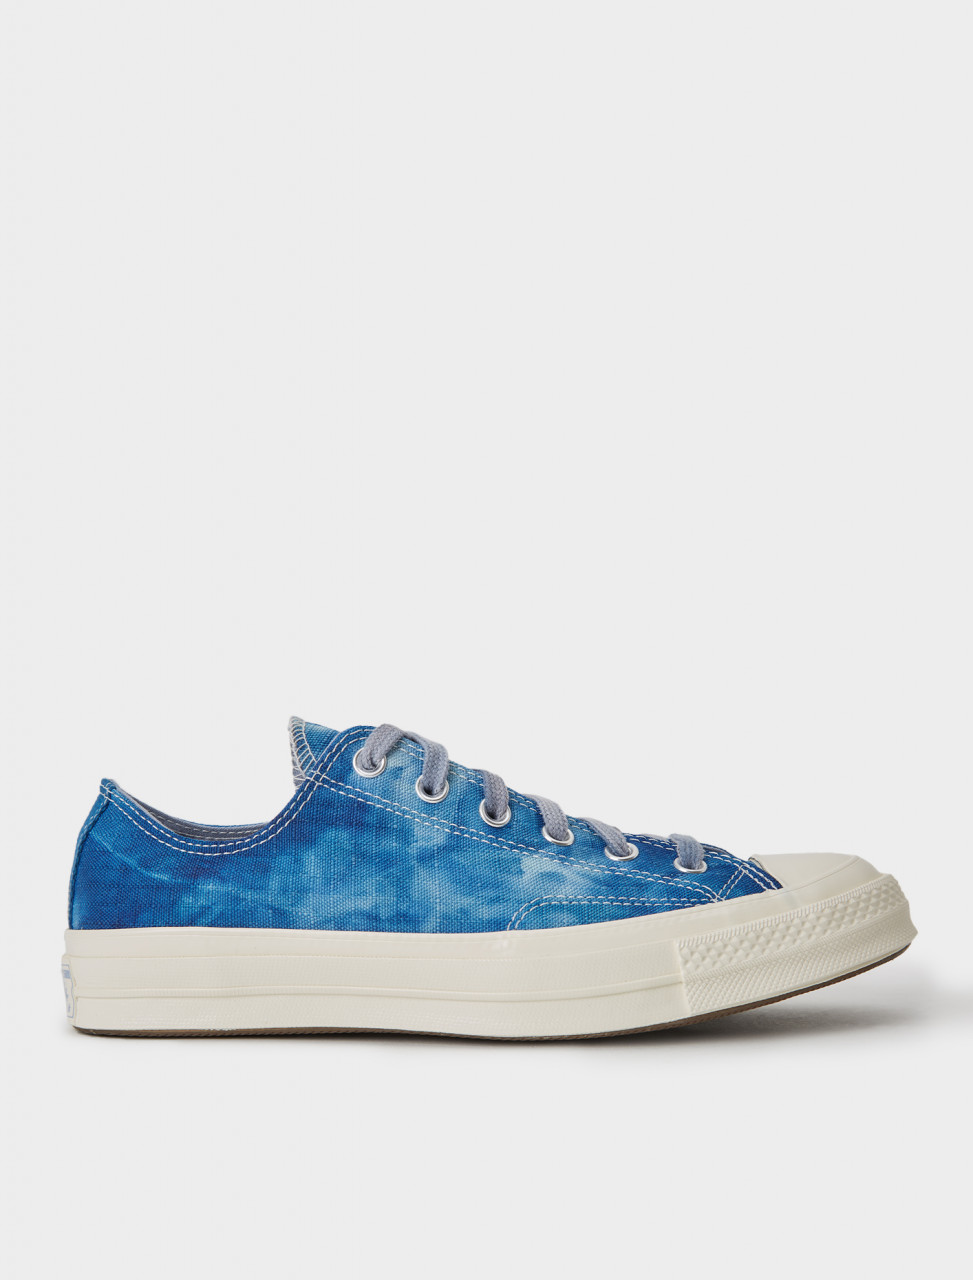 "Converse Chuck 70 Low Sneaker in Court Blue Tie-Dye ""Twisted Summer"""